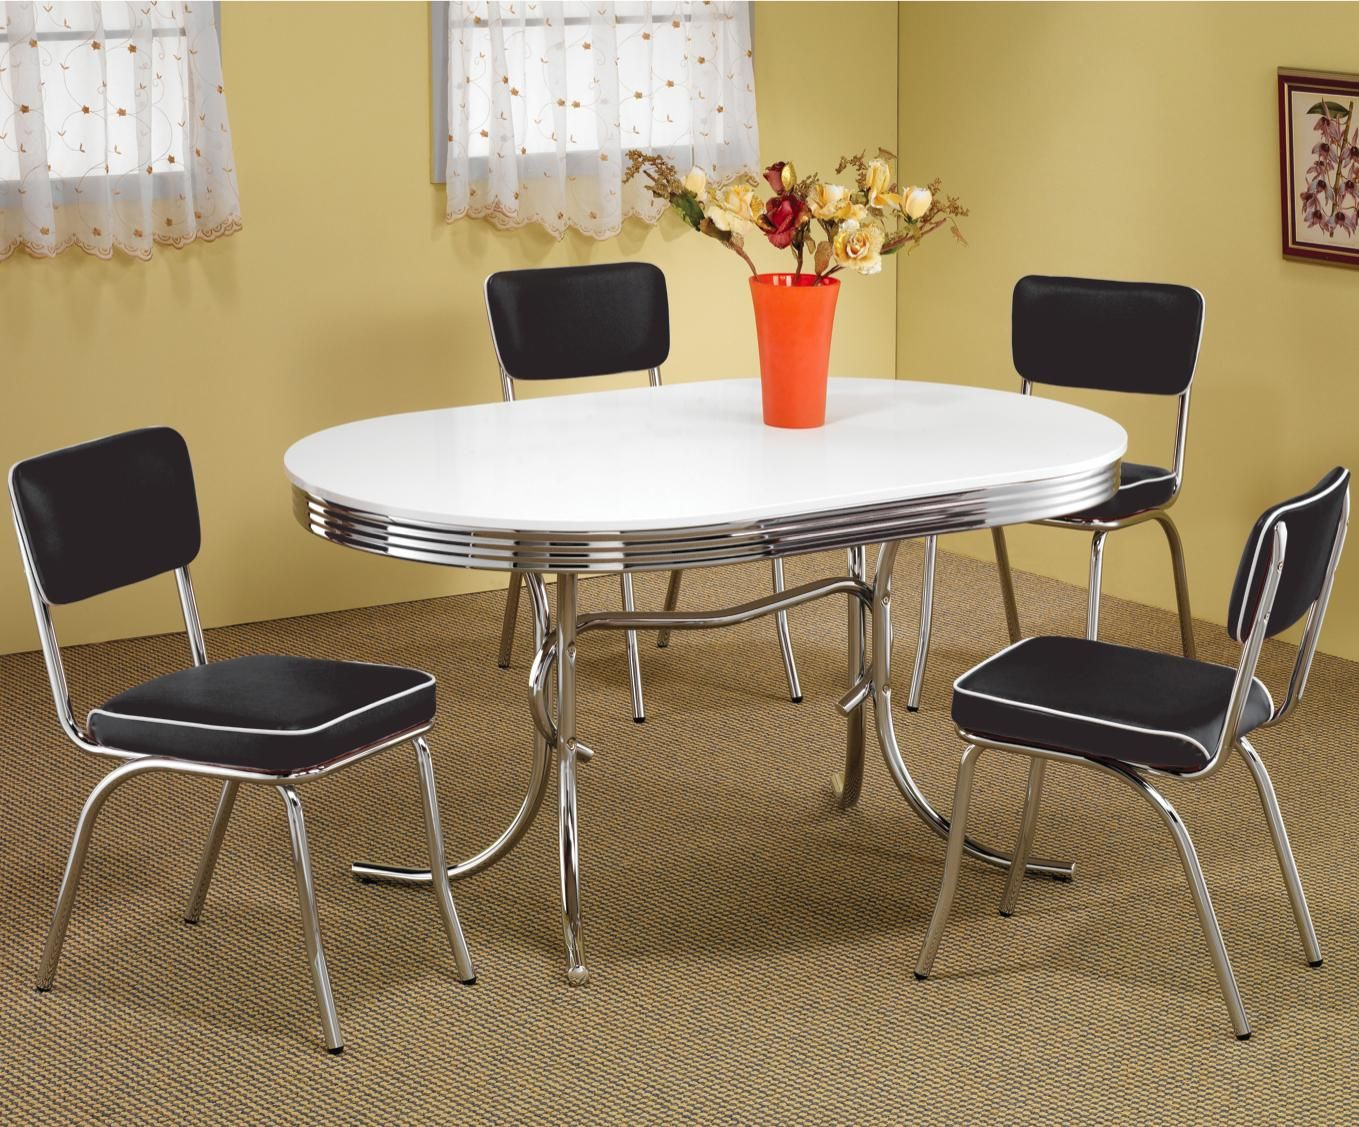 9++ Retro dining table info   LivingRoomReference